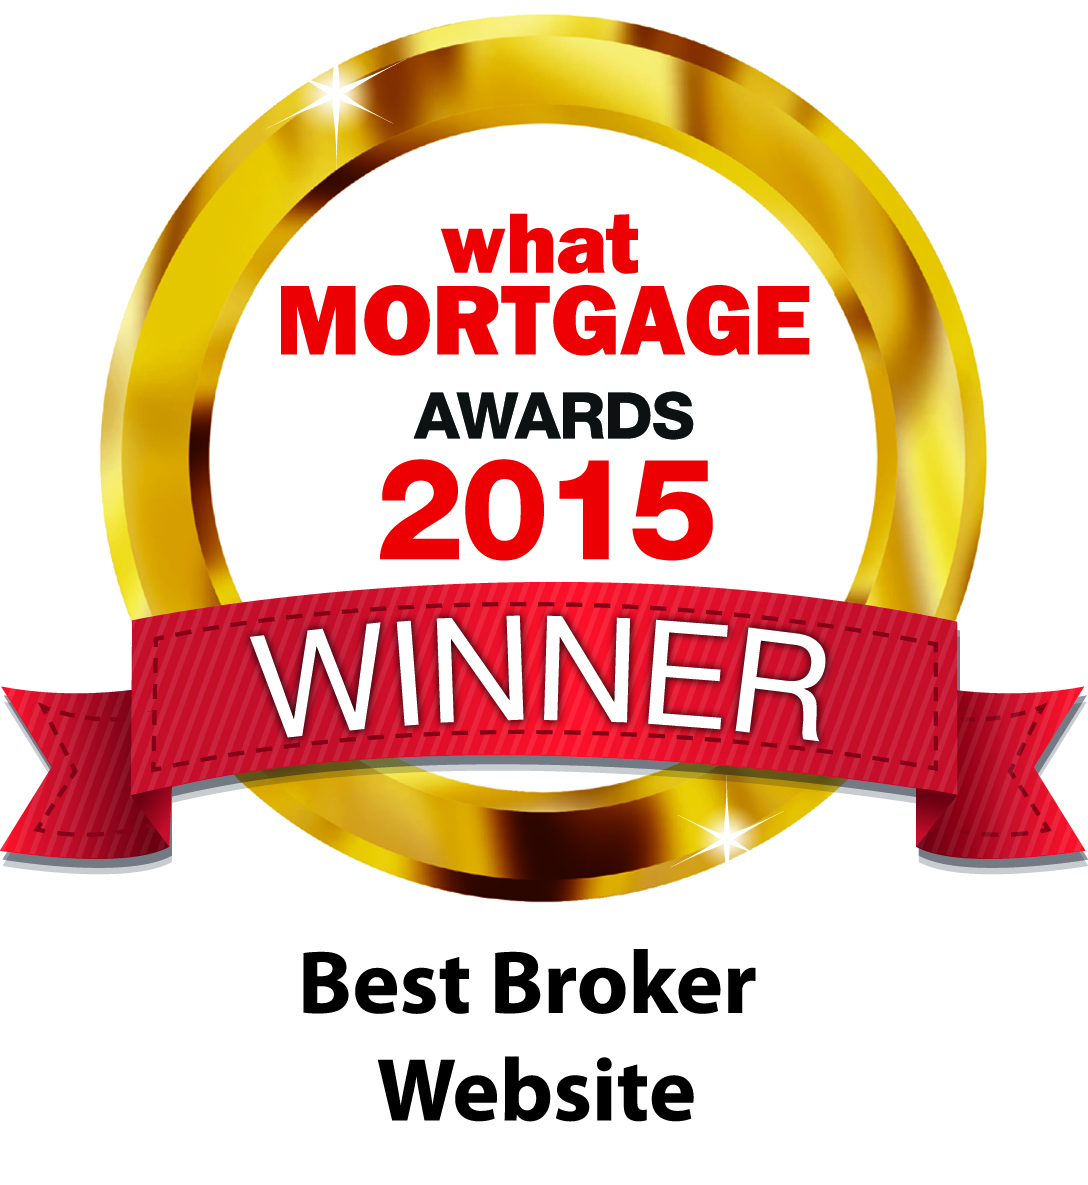 Best Broker Website - What Mortgage Awards 2015